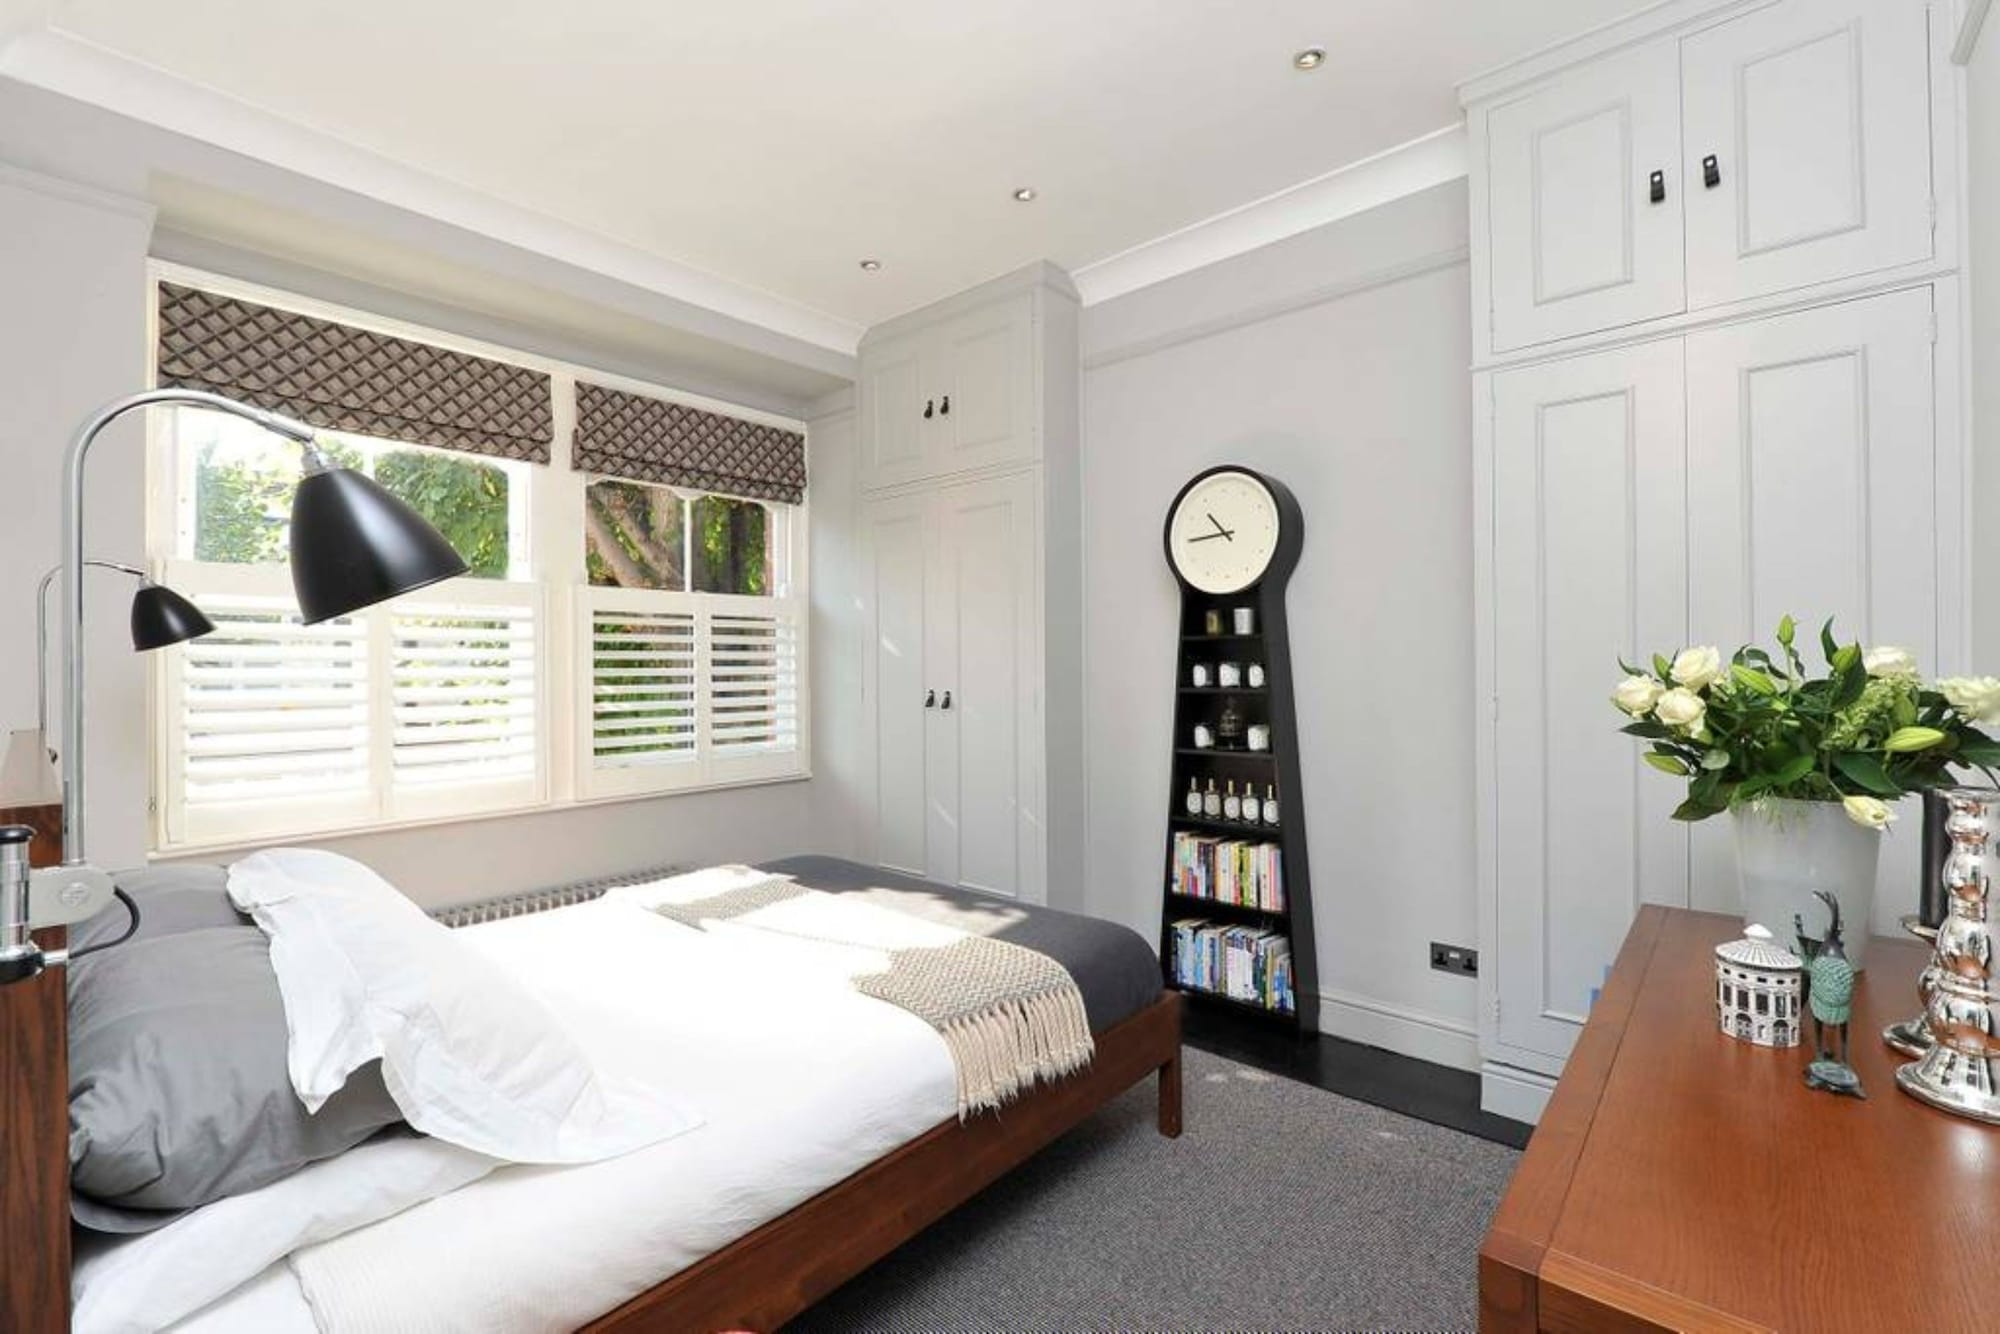 Newly Renovated 3 Bedroom Flat With Terrace, London